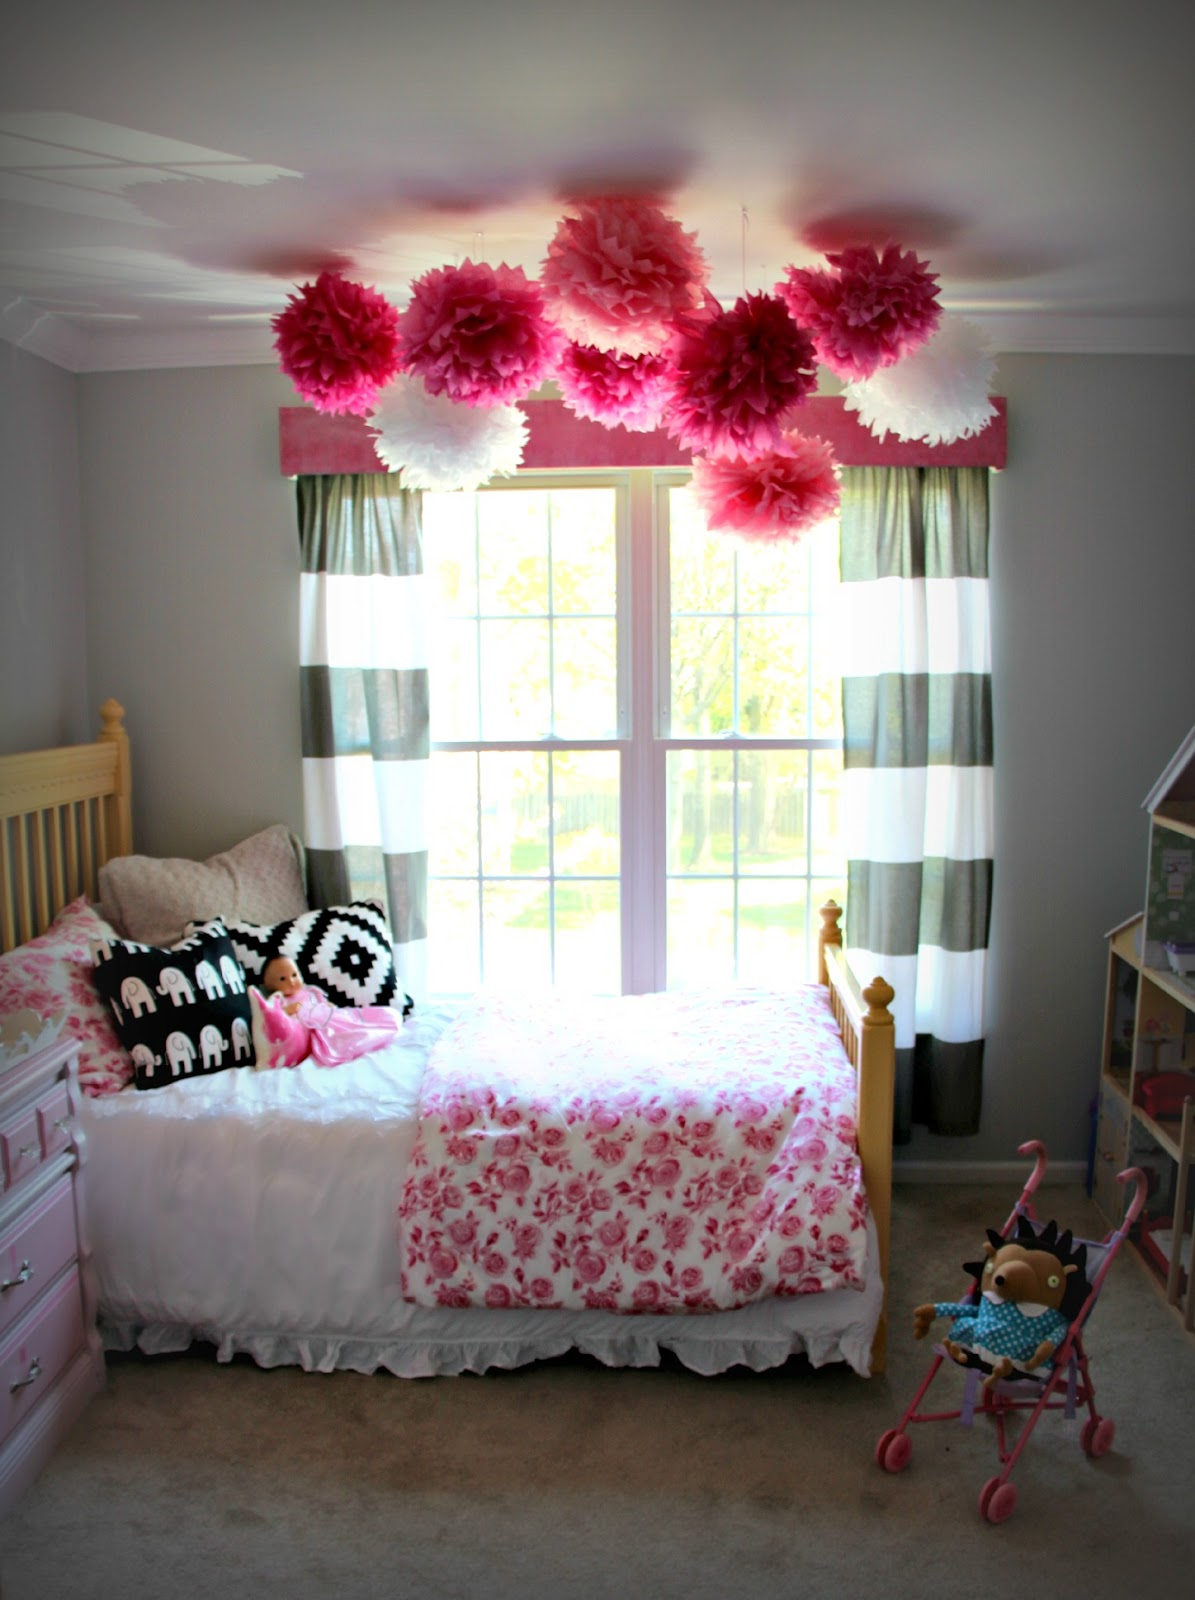 Also They Look Fabulous If You Use Two Panels On One Window I Really Enjoy The Little Pink Monster Kanes Wife Used For Her Daughters Bedroom